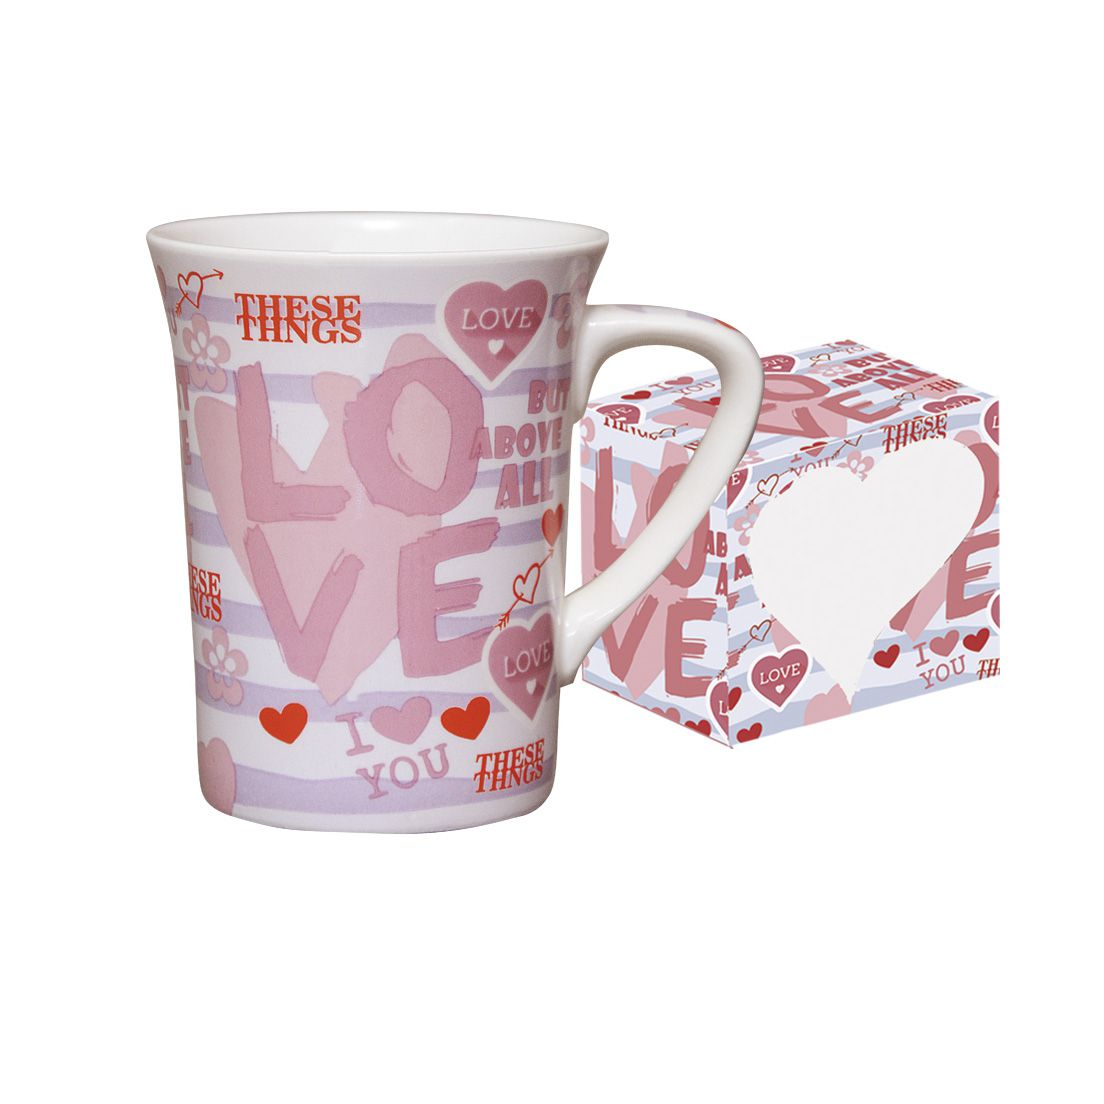 Caneca de Porcelana Fina 330Ml Love